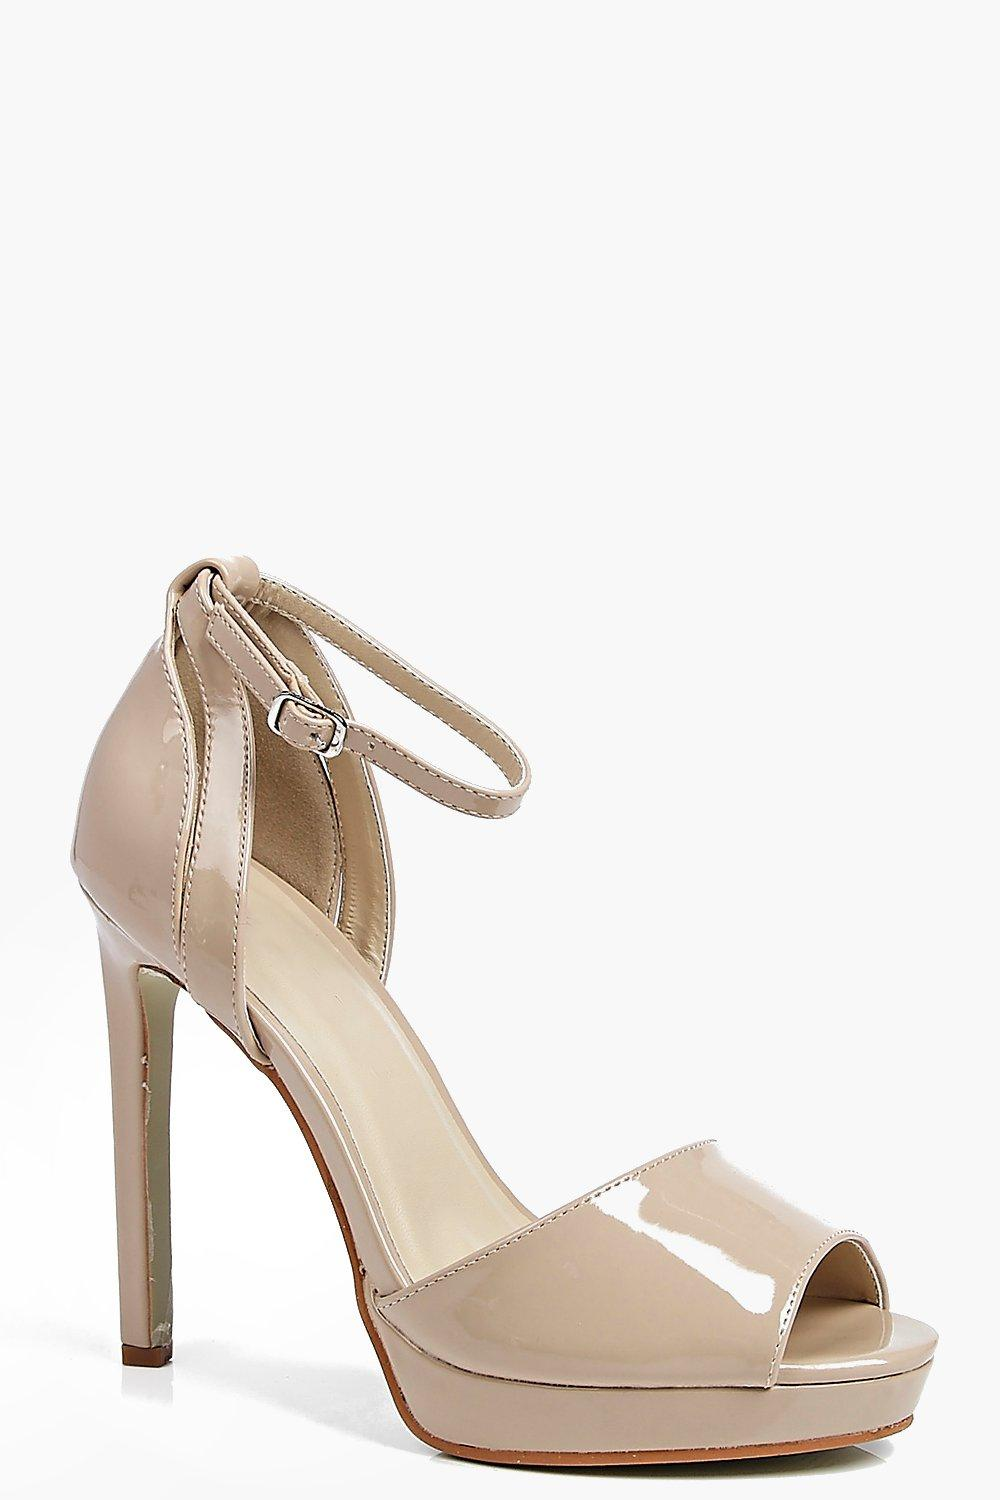 Phoebe Peeptoe Strappy Two Part Heels